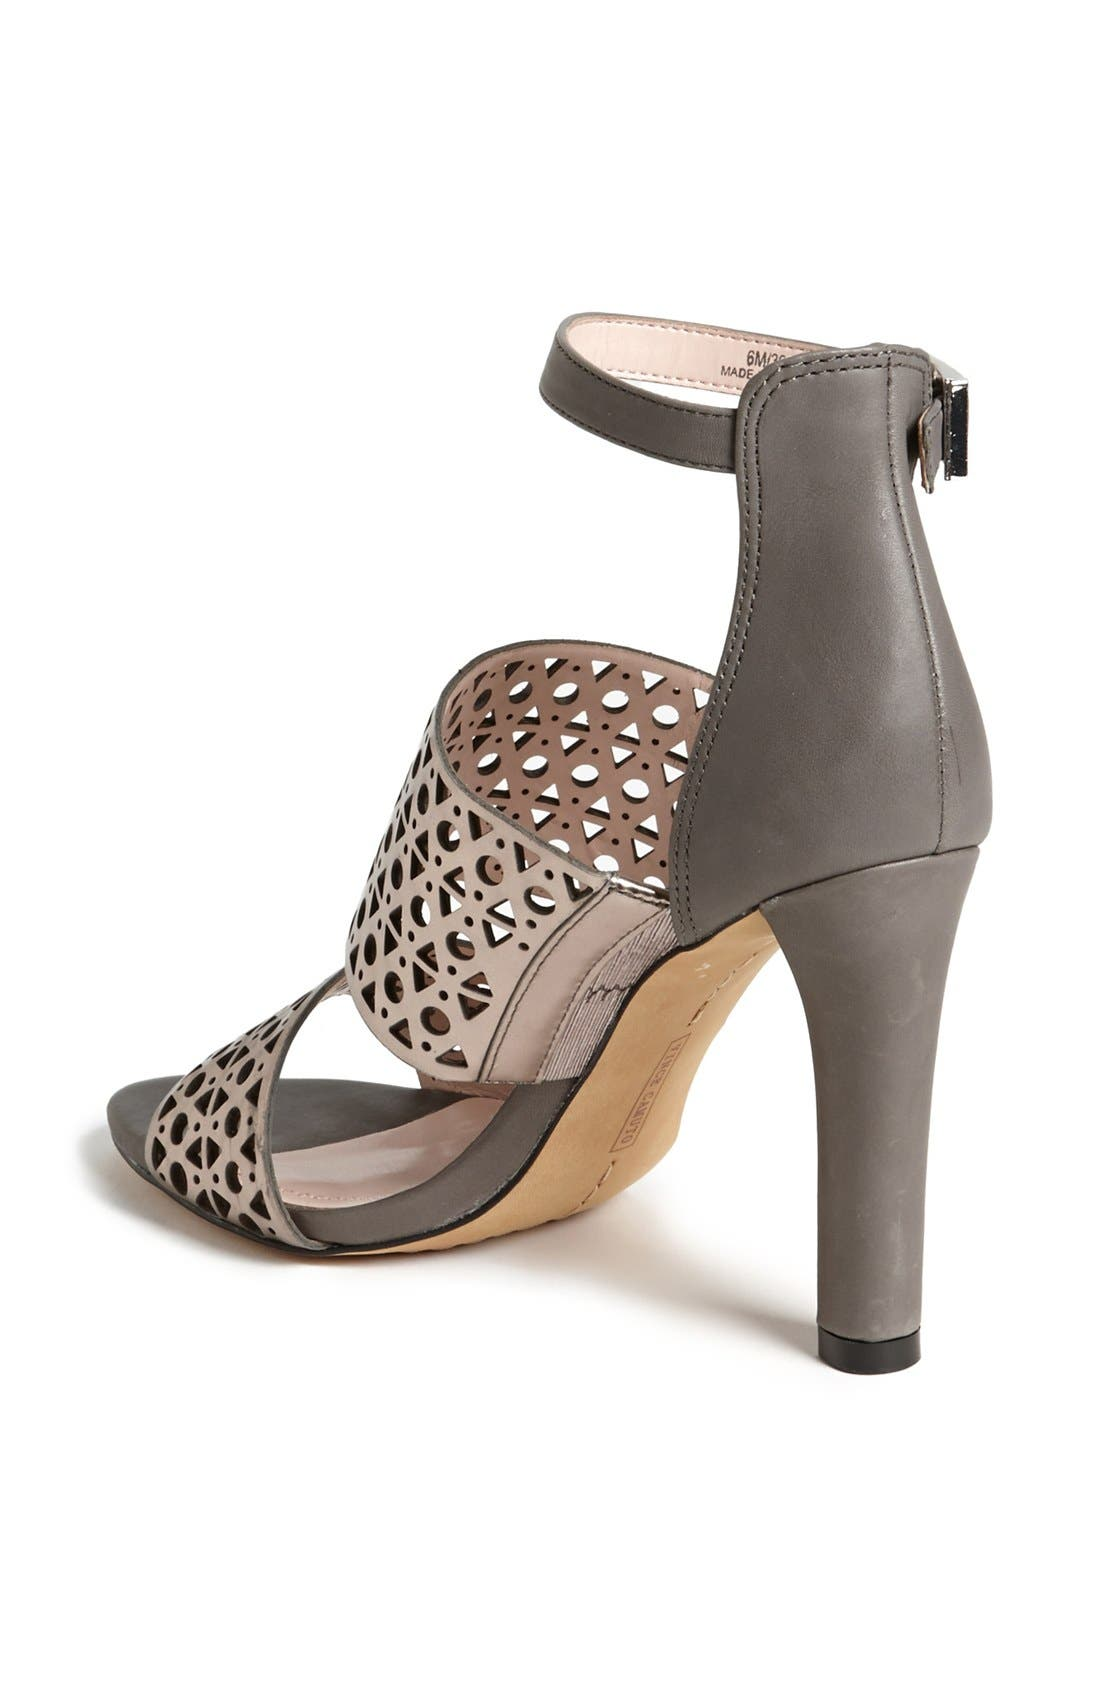 Alternate Image 2  - Vince Camuto 'Okeli' Perforated Ankle Strap Sandal